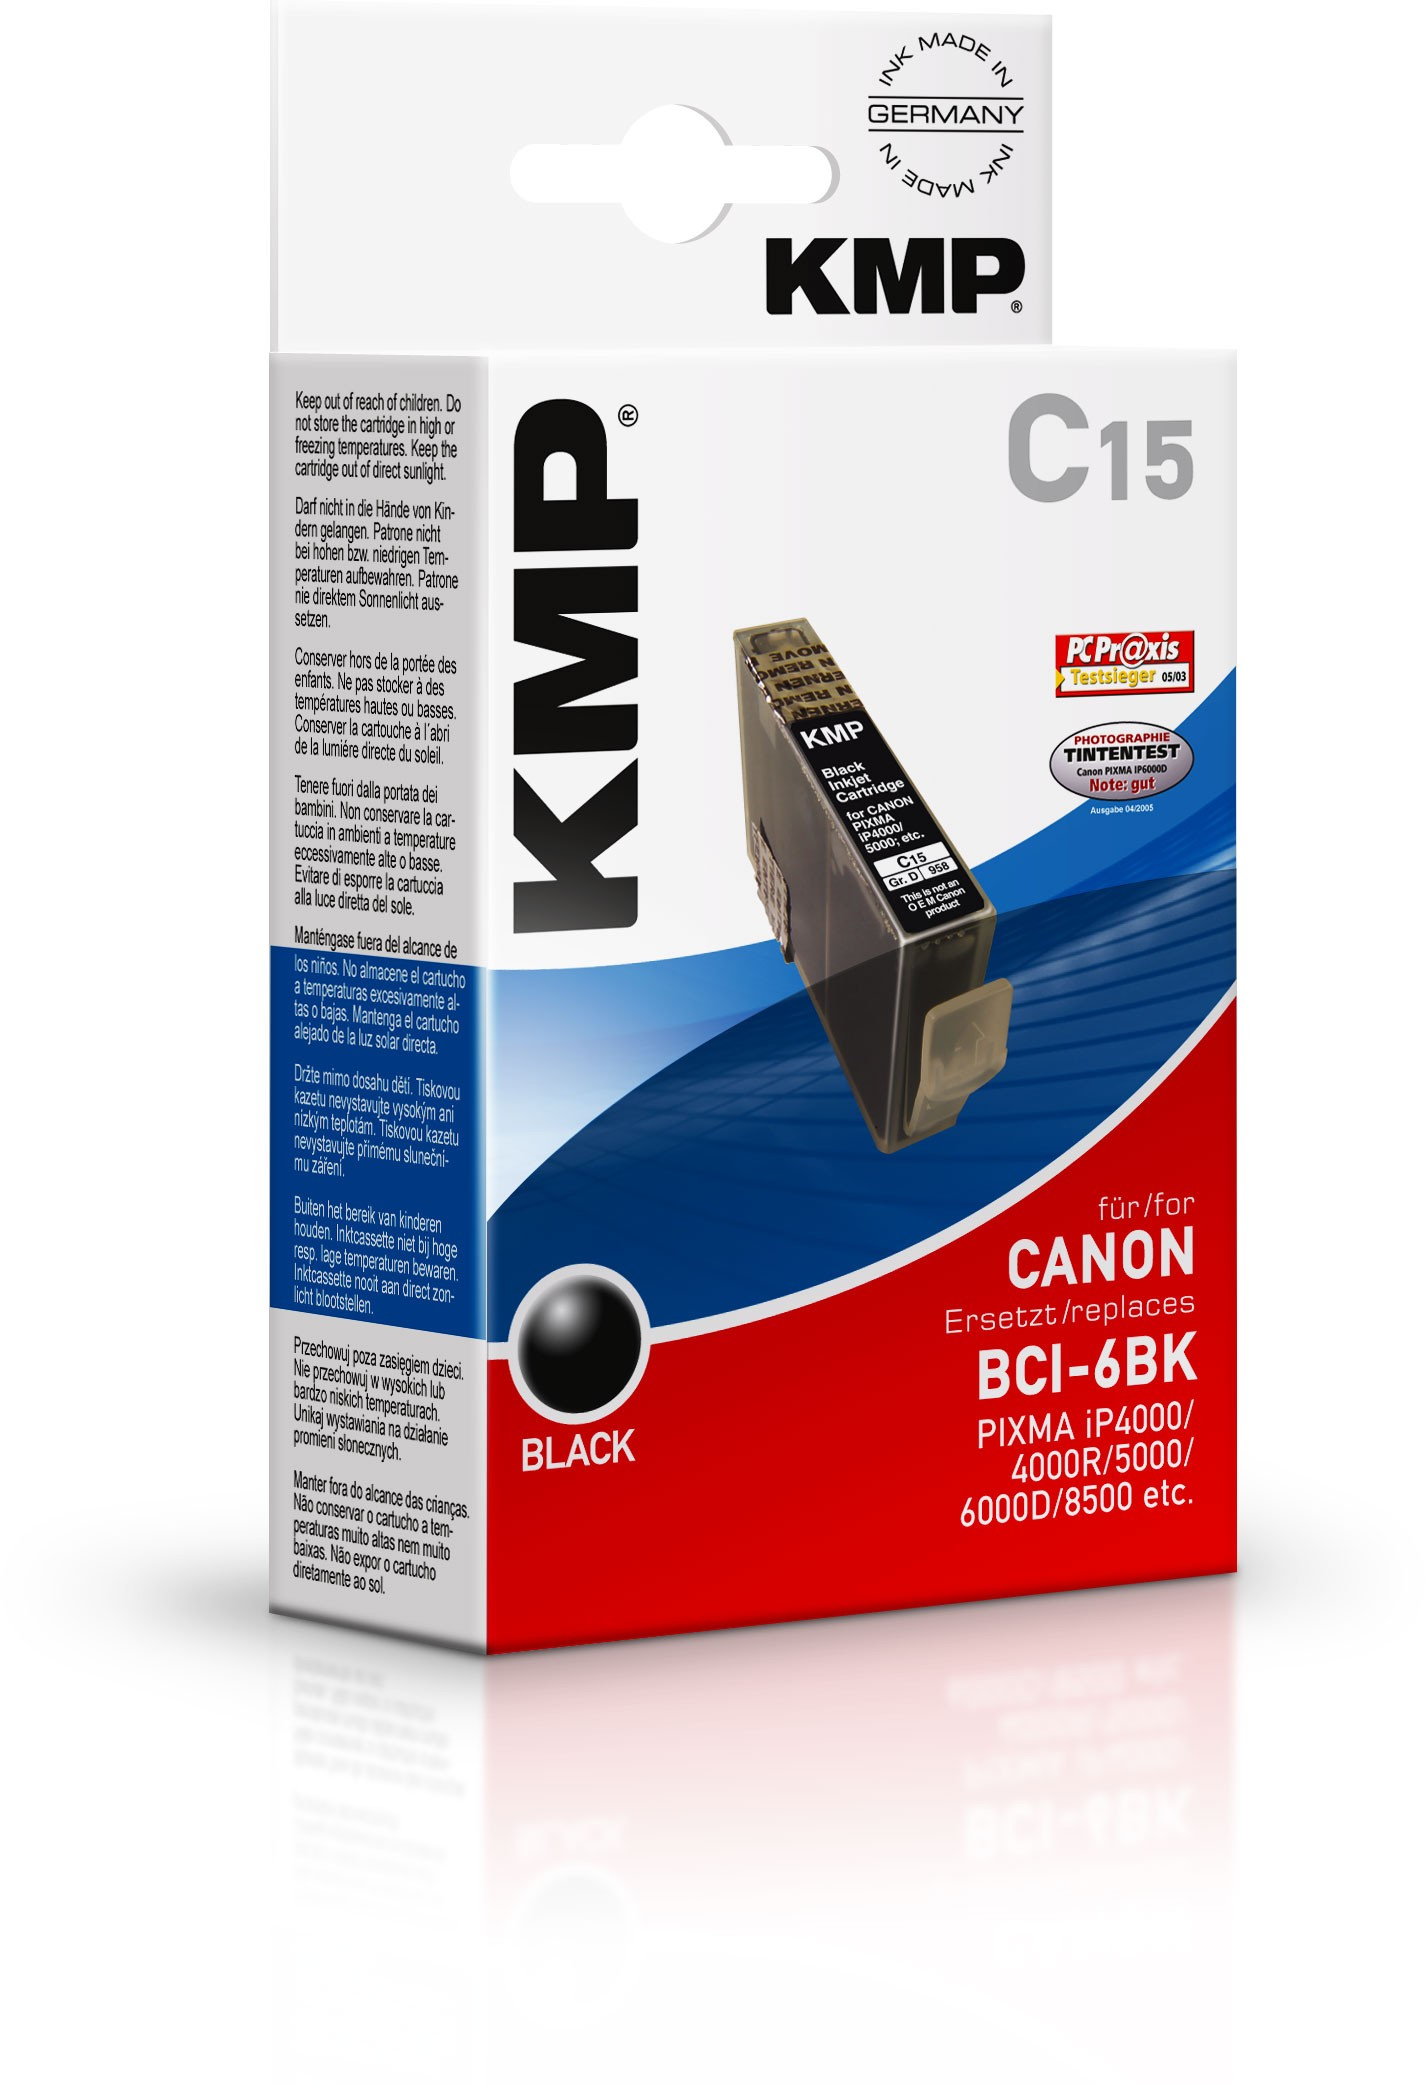 KMP C15 ink cartridge black compatible with Canon BCI-6 BK